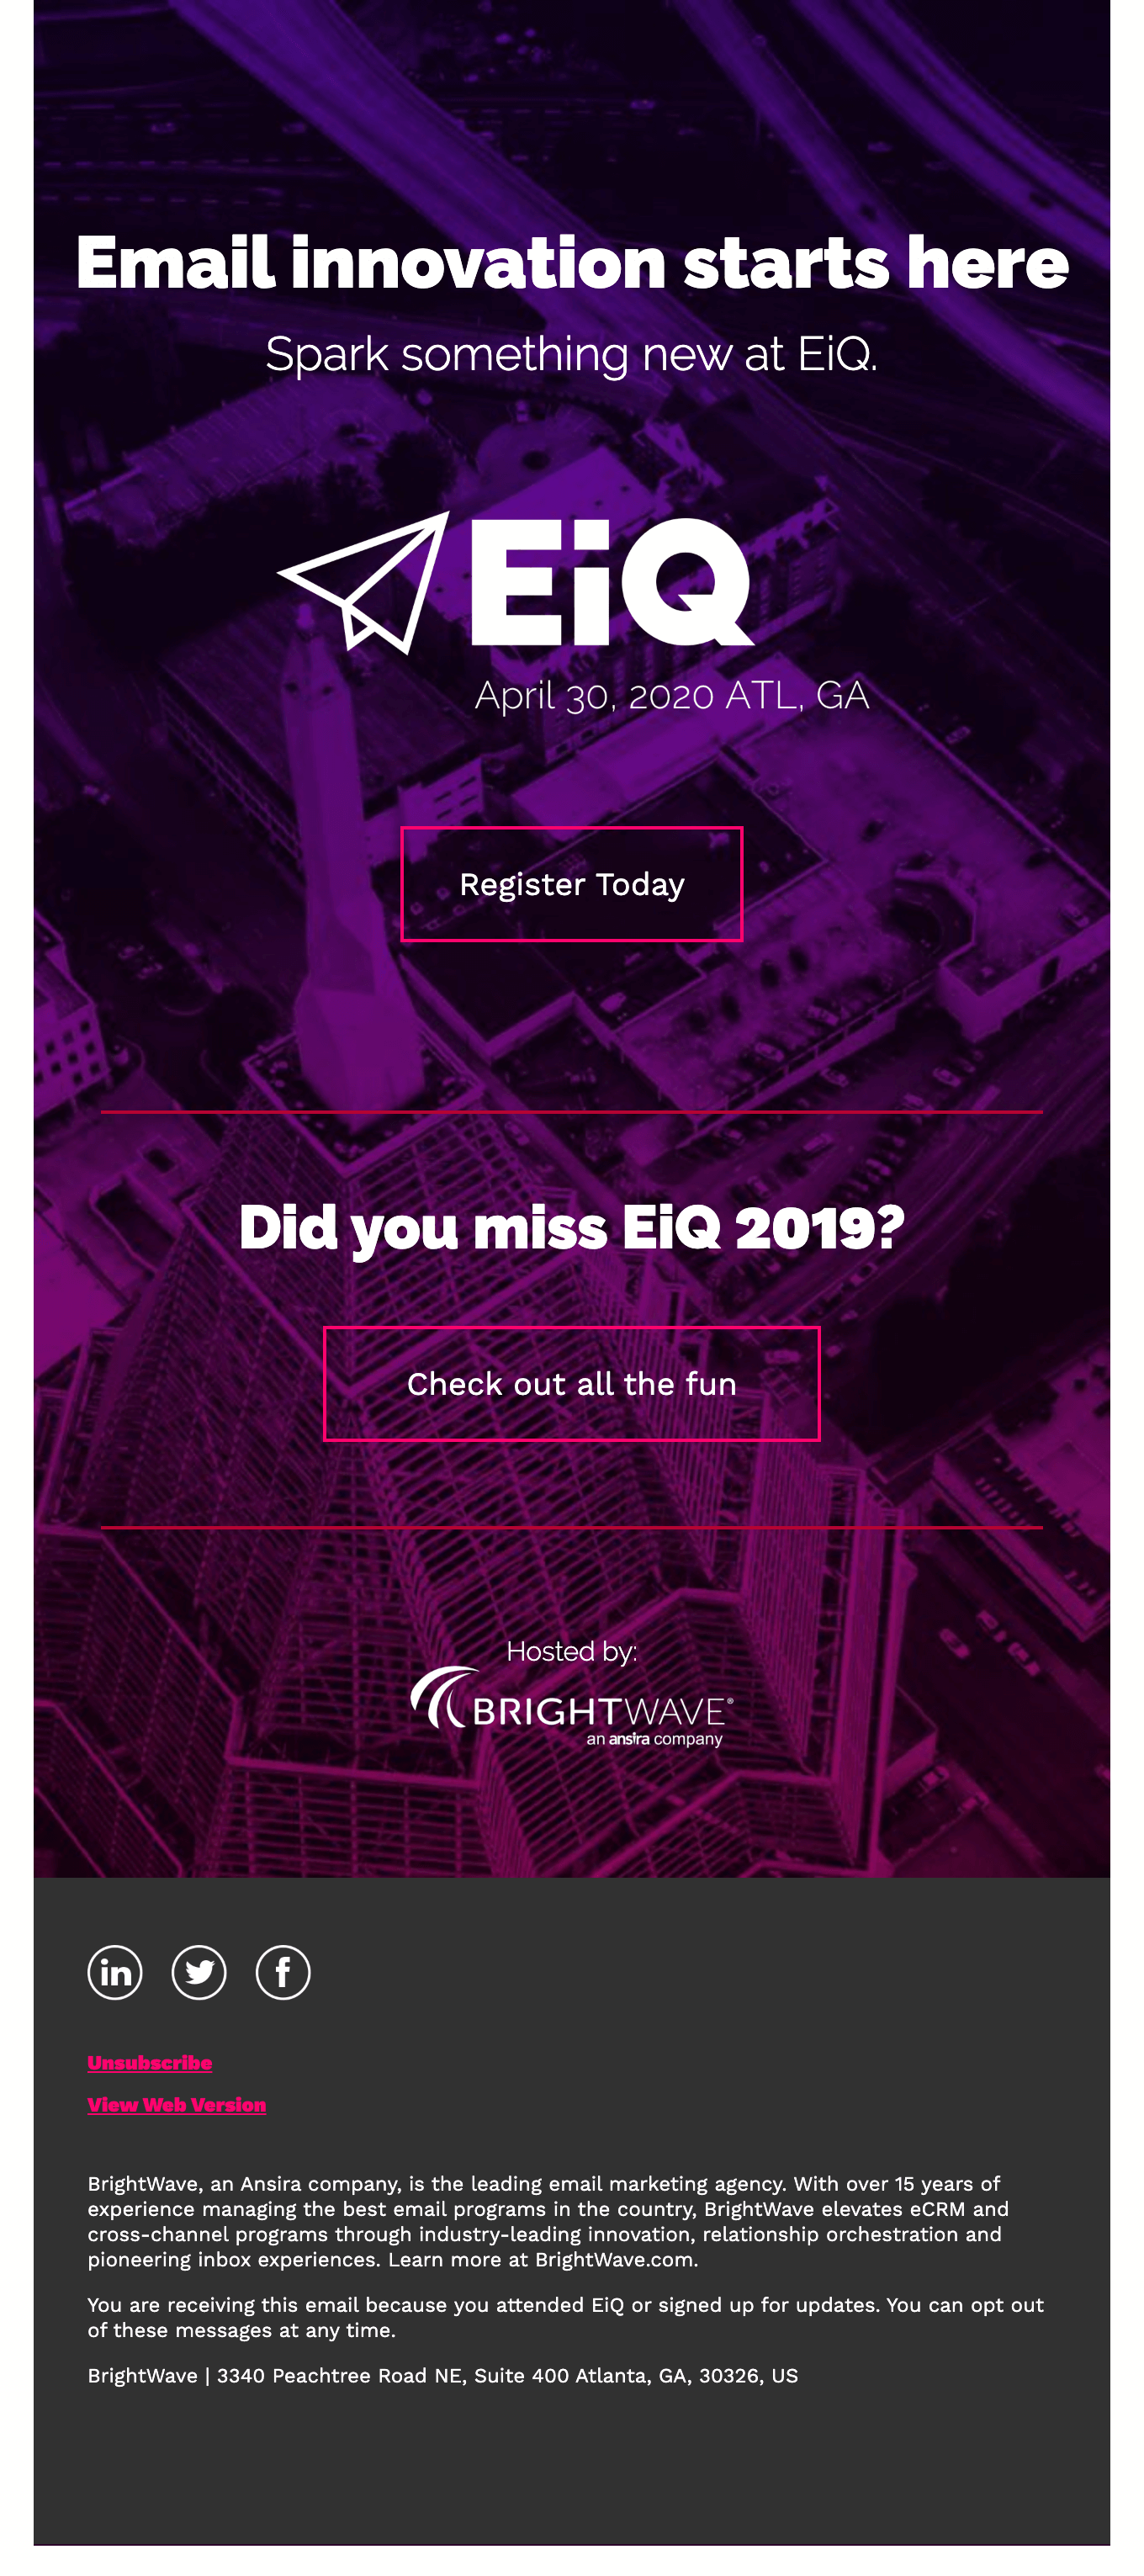 EiQ 2020 Details Are Here!